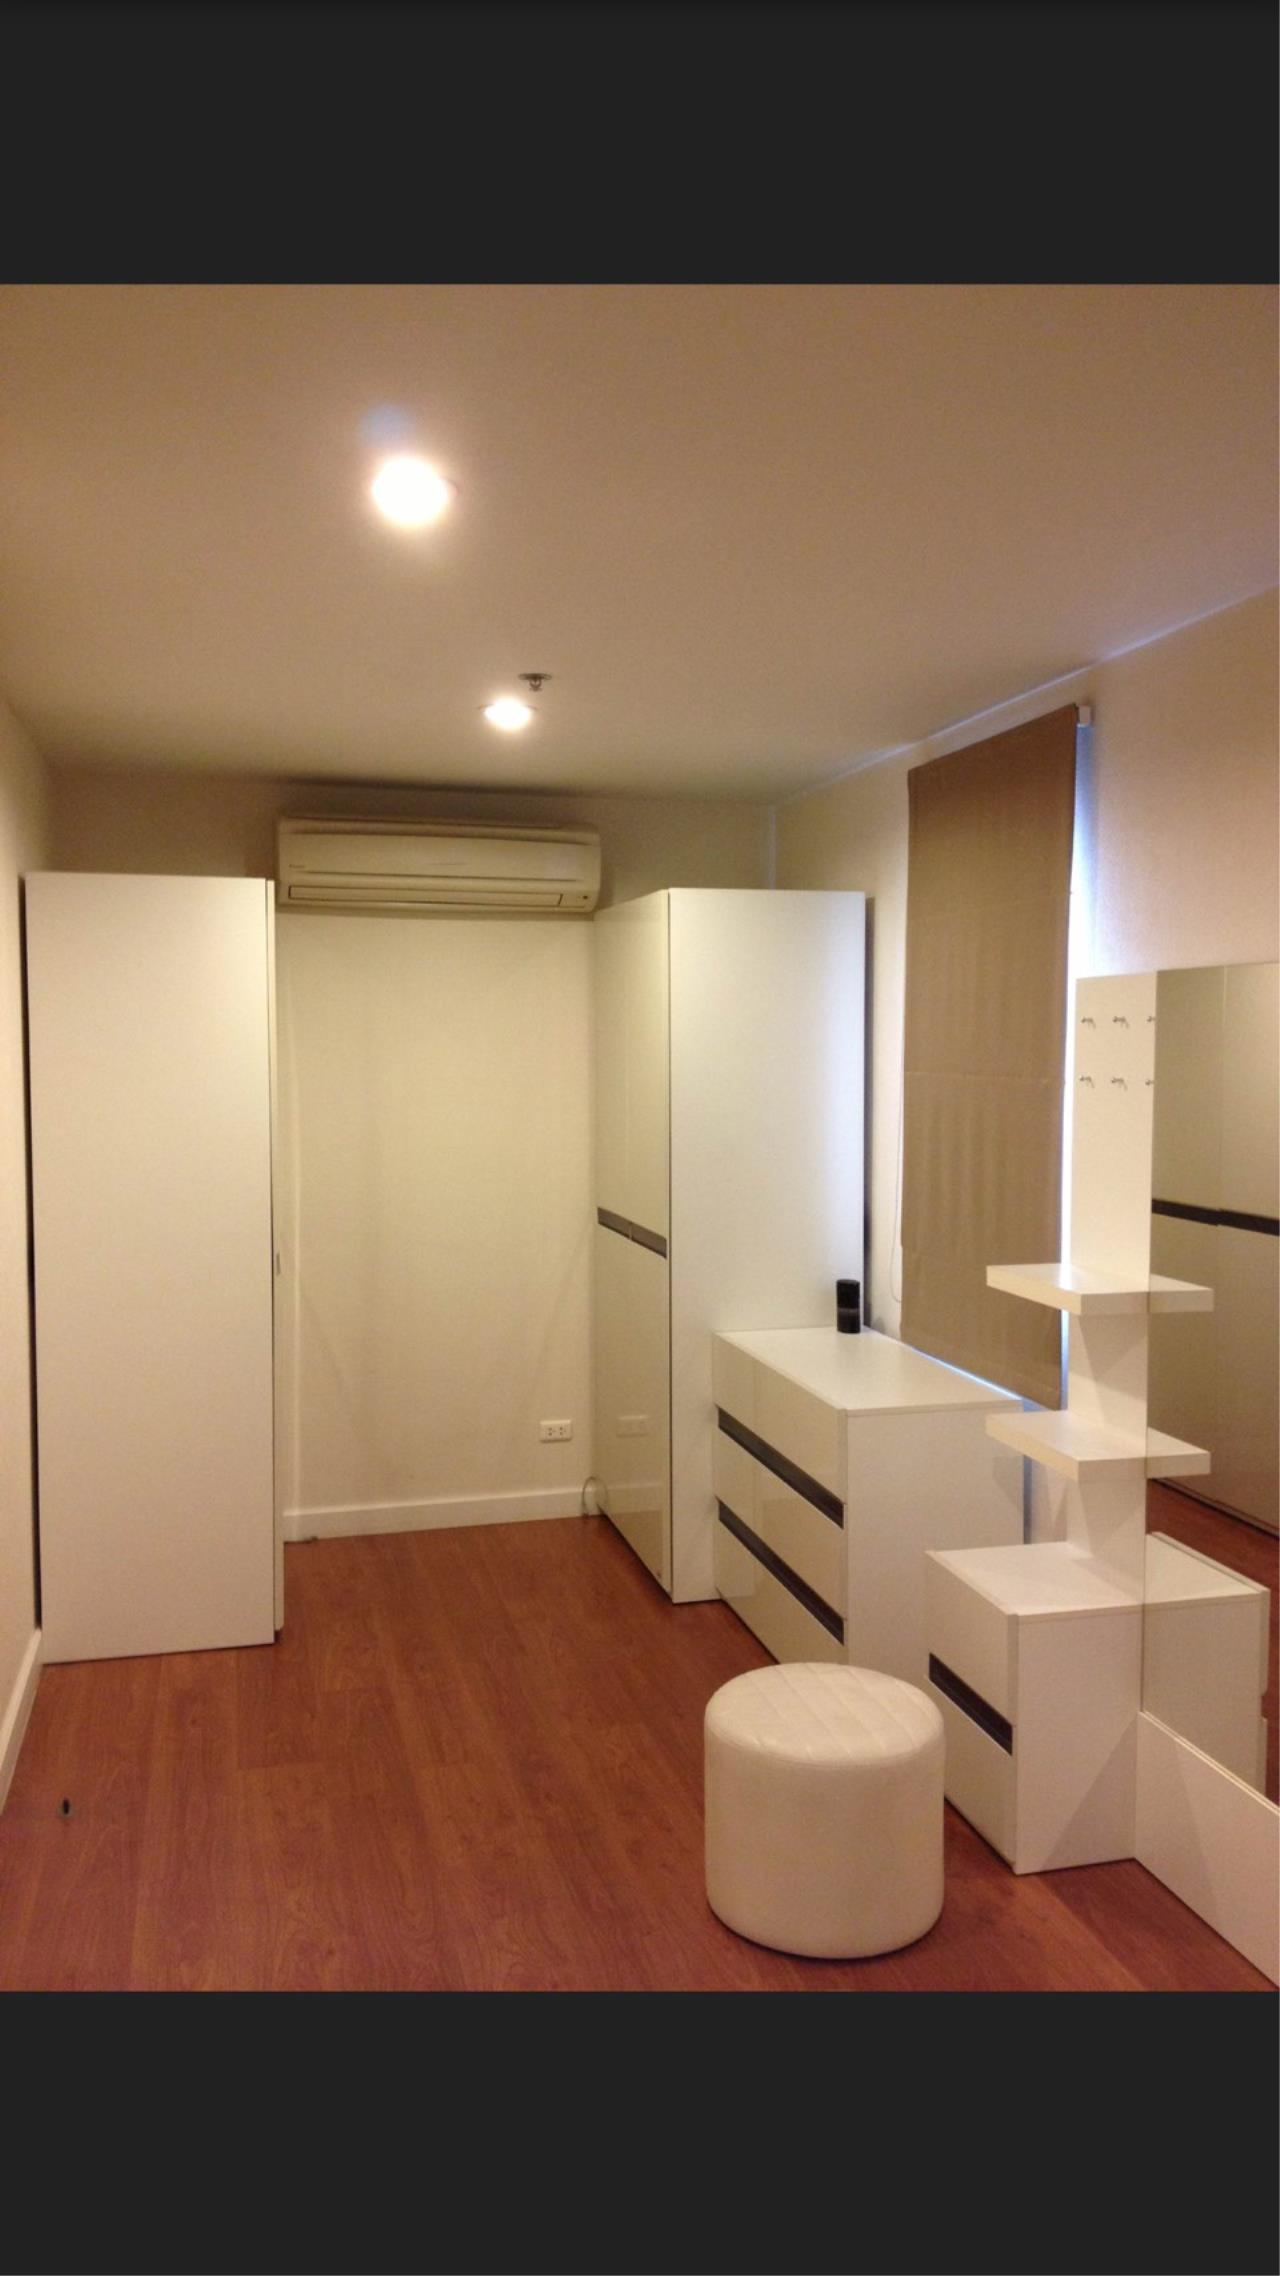 RE/MAX BestLife Agency's Condo One X Sukhumvit 26, Rent 1 bedroom, Phrom Pong 7